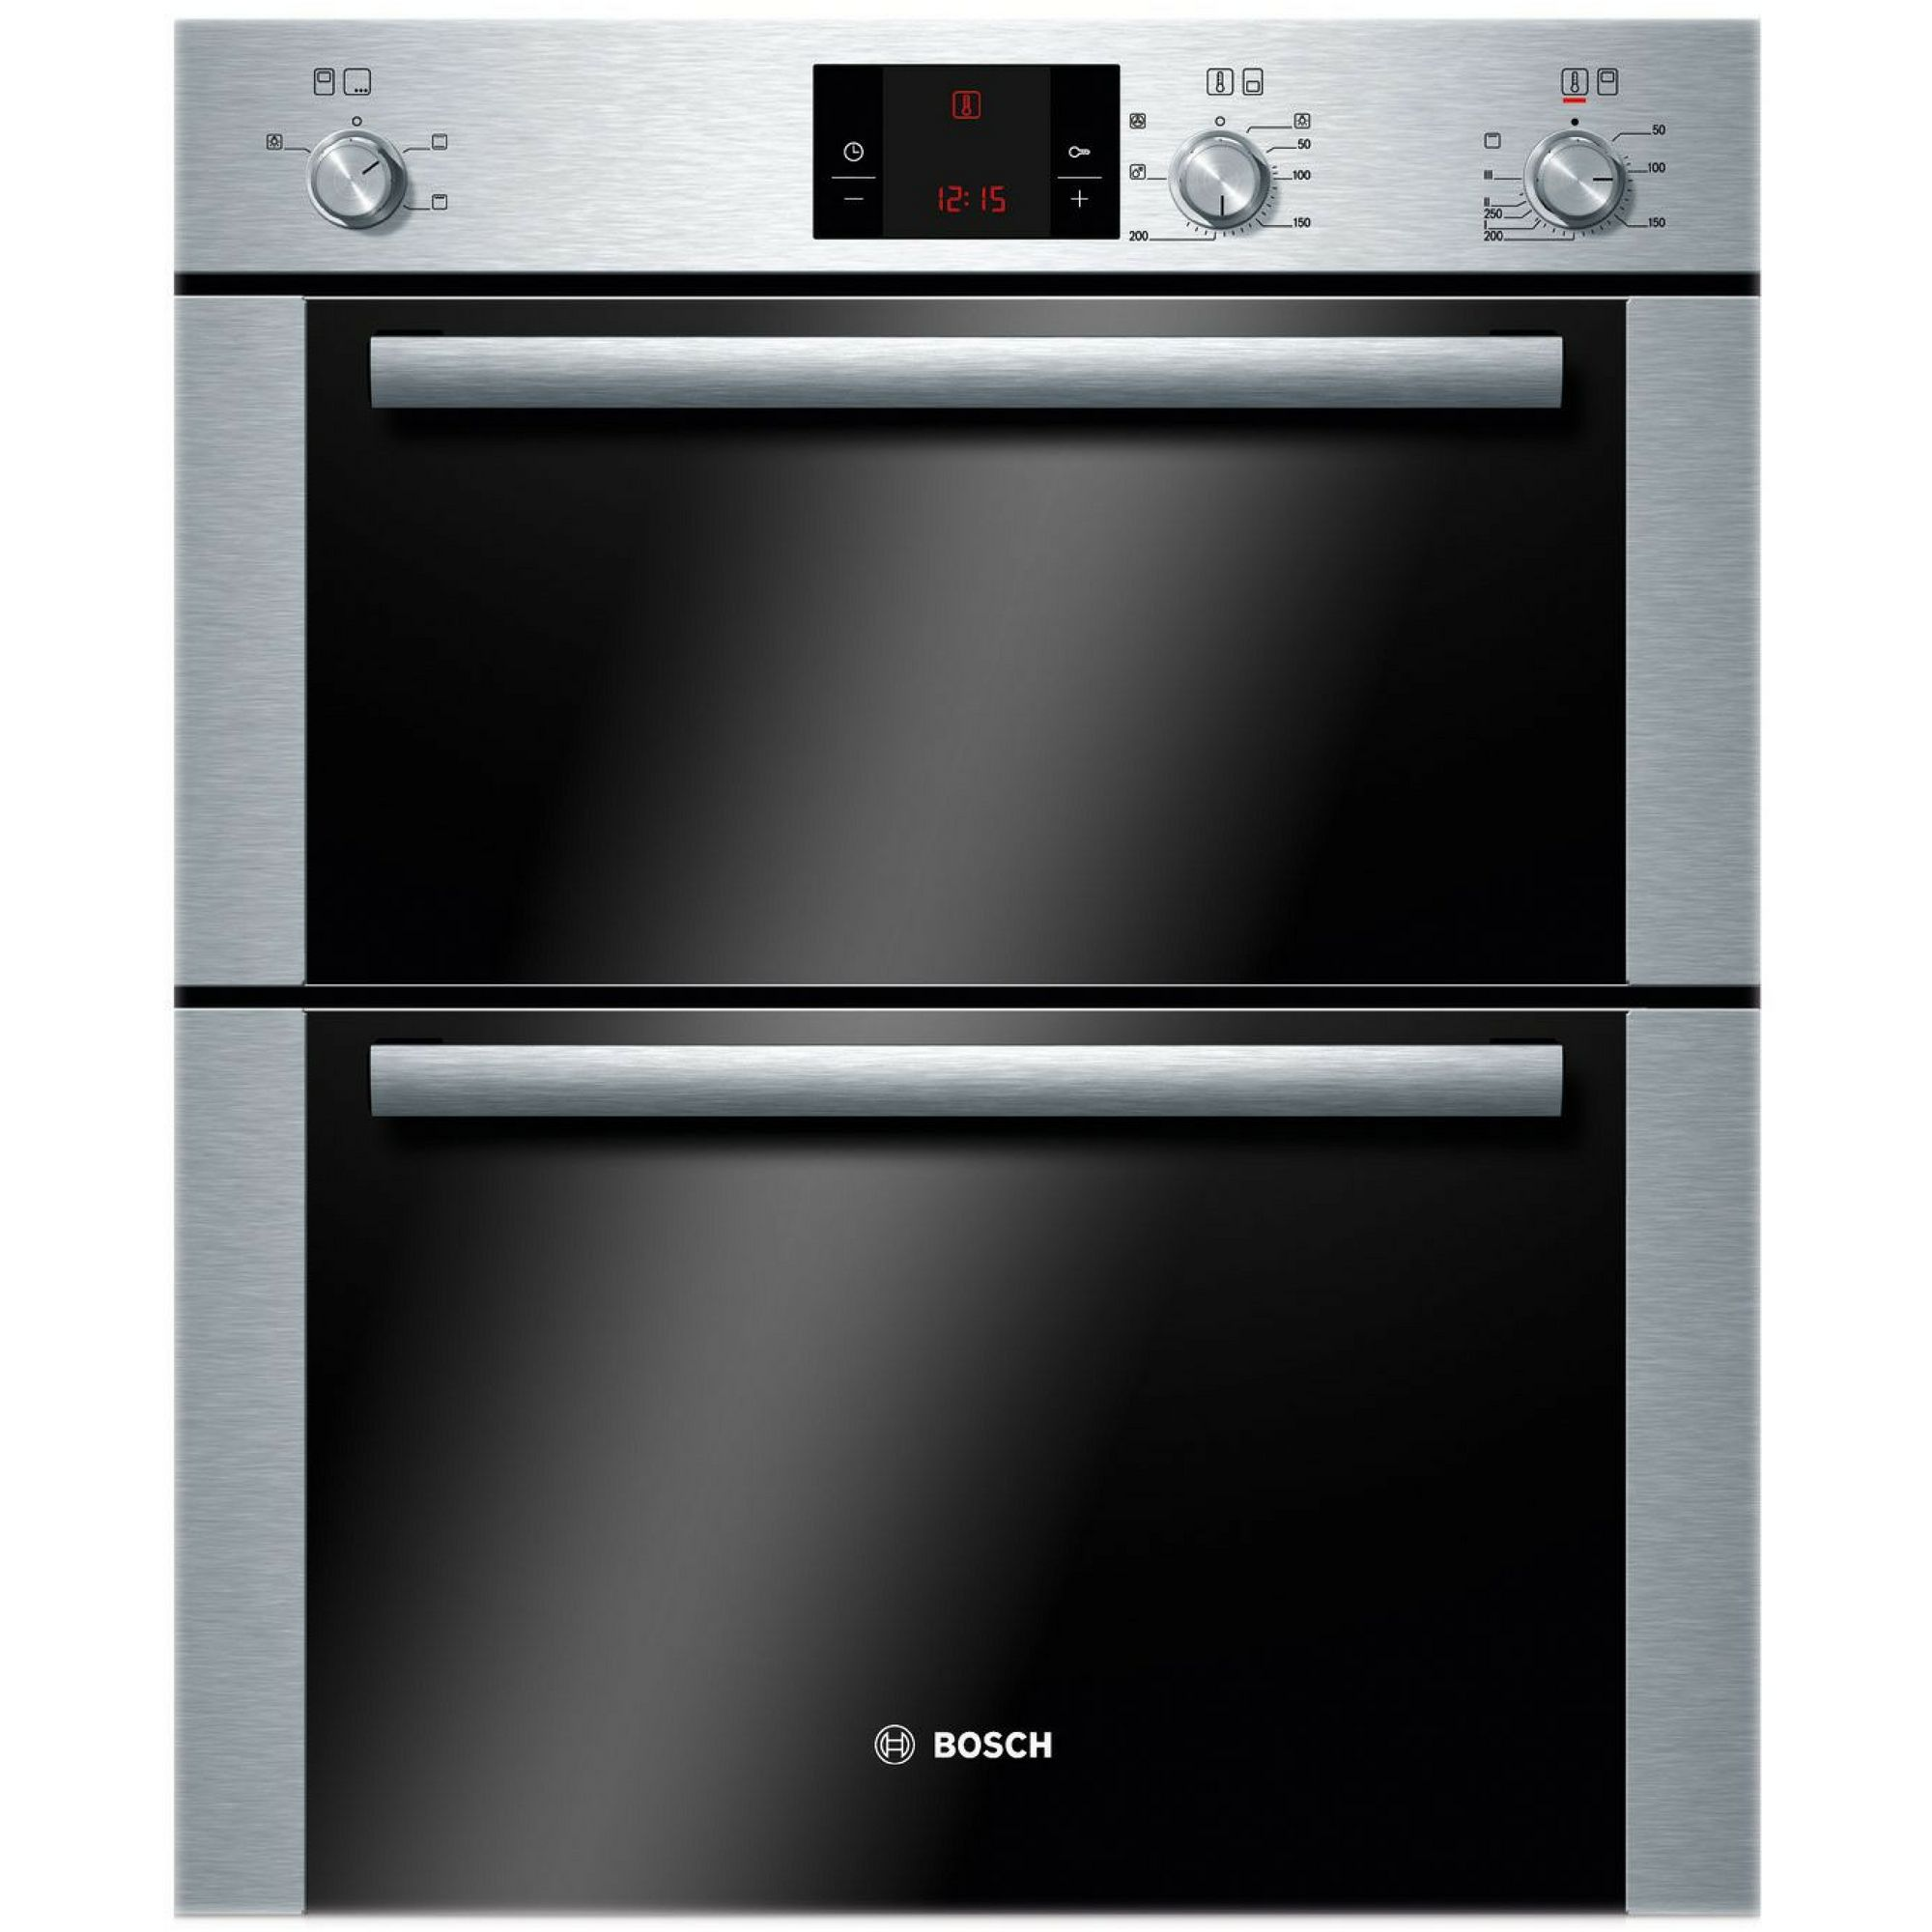 Of storage both behind the worktop amp cooker and below the sinks - Bosch Hbn13b251b Brushed Steel Electric Double Oven Departments Diy At B Q